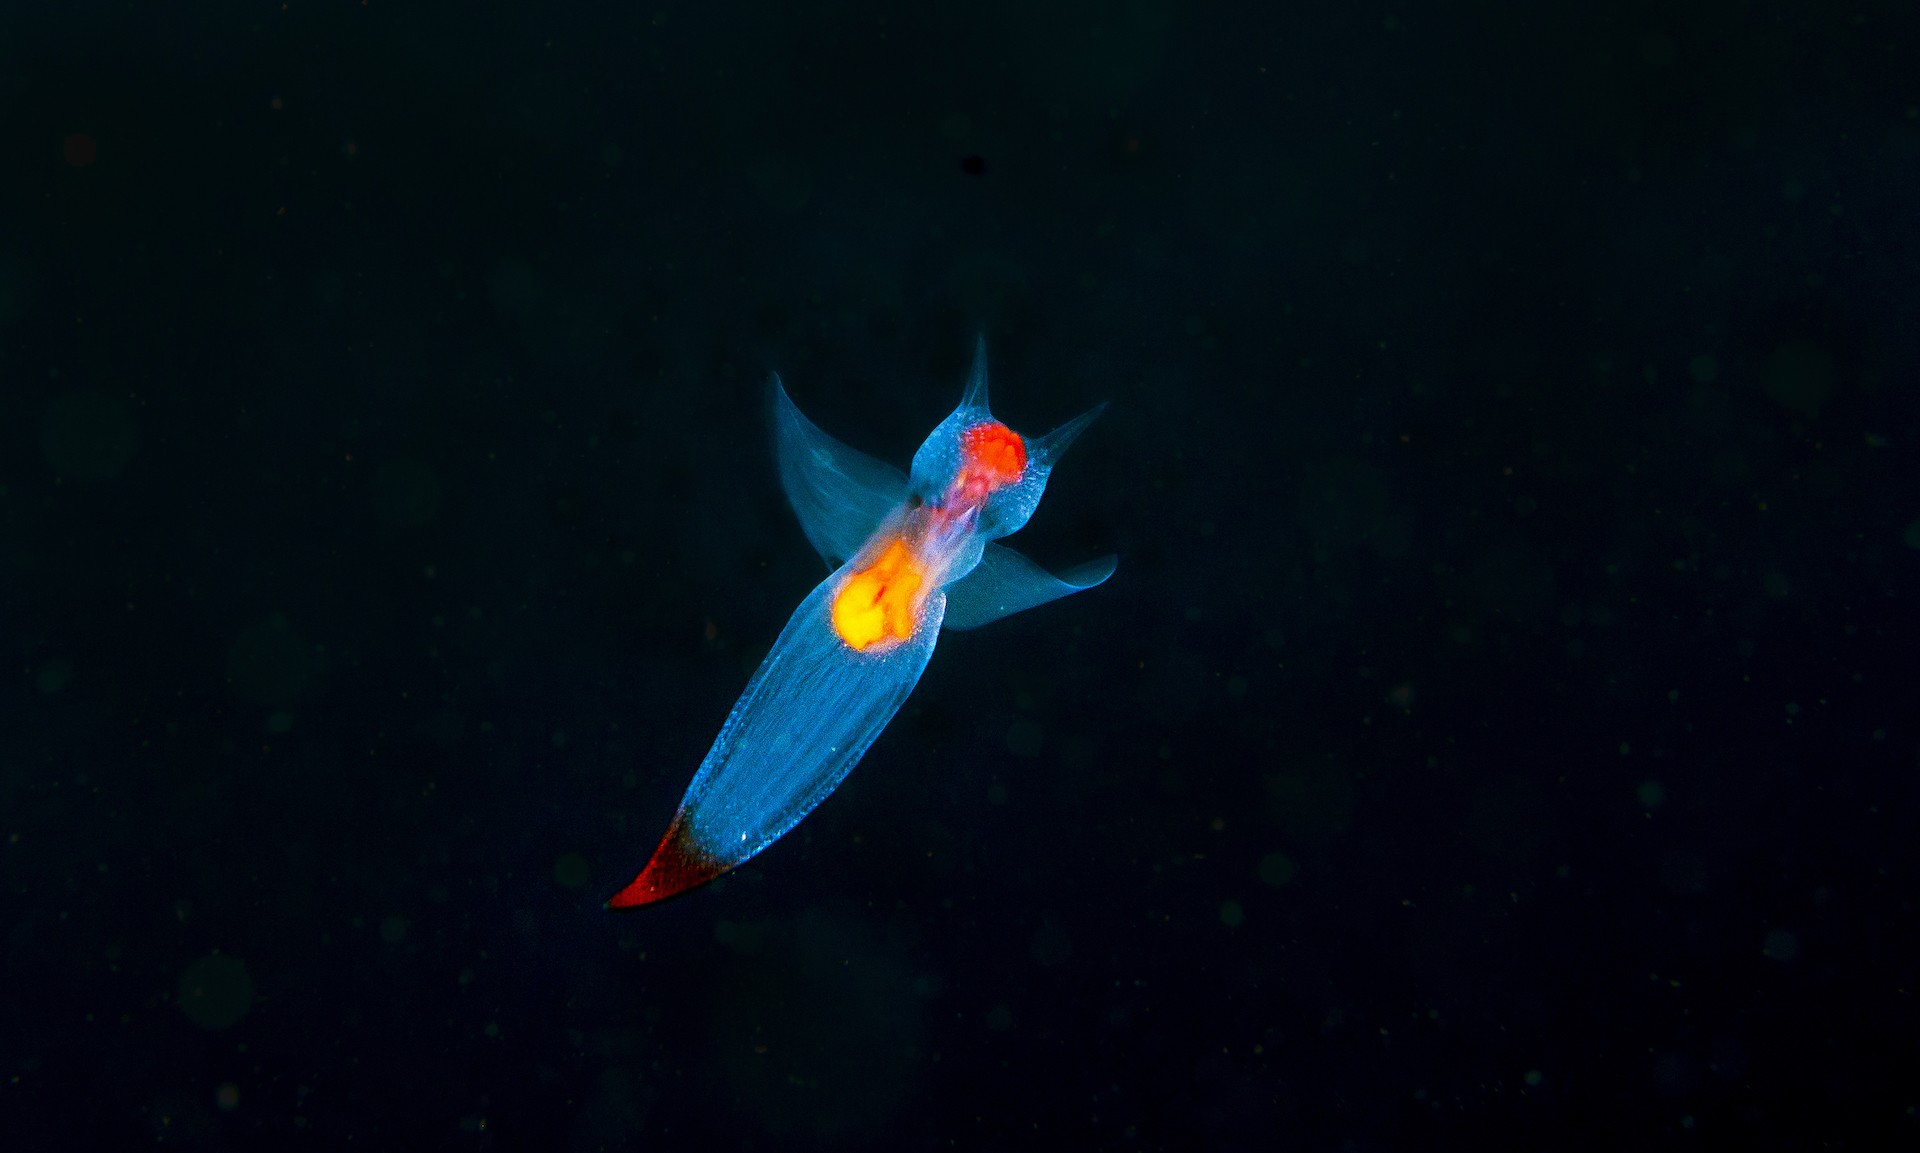 Much less common to see is the sea angel. A member of the sea slug family, sea angels are an ethereal sight, like tiny lanterns floating through inky skies. They are no larger than a fingernail.